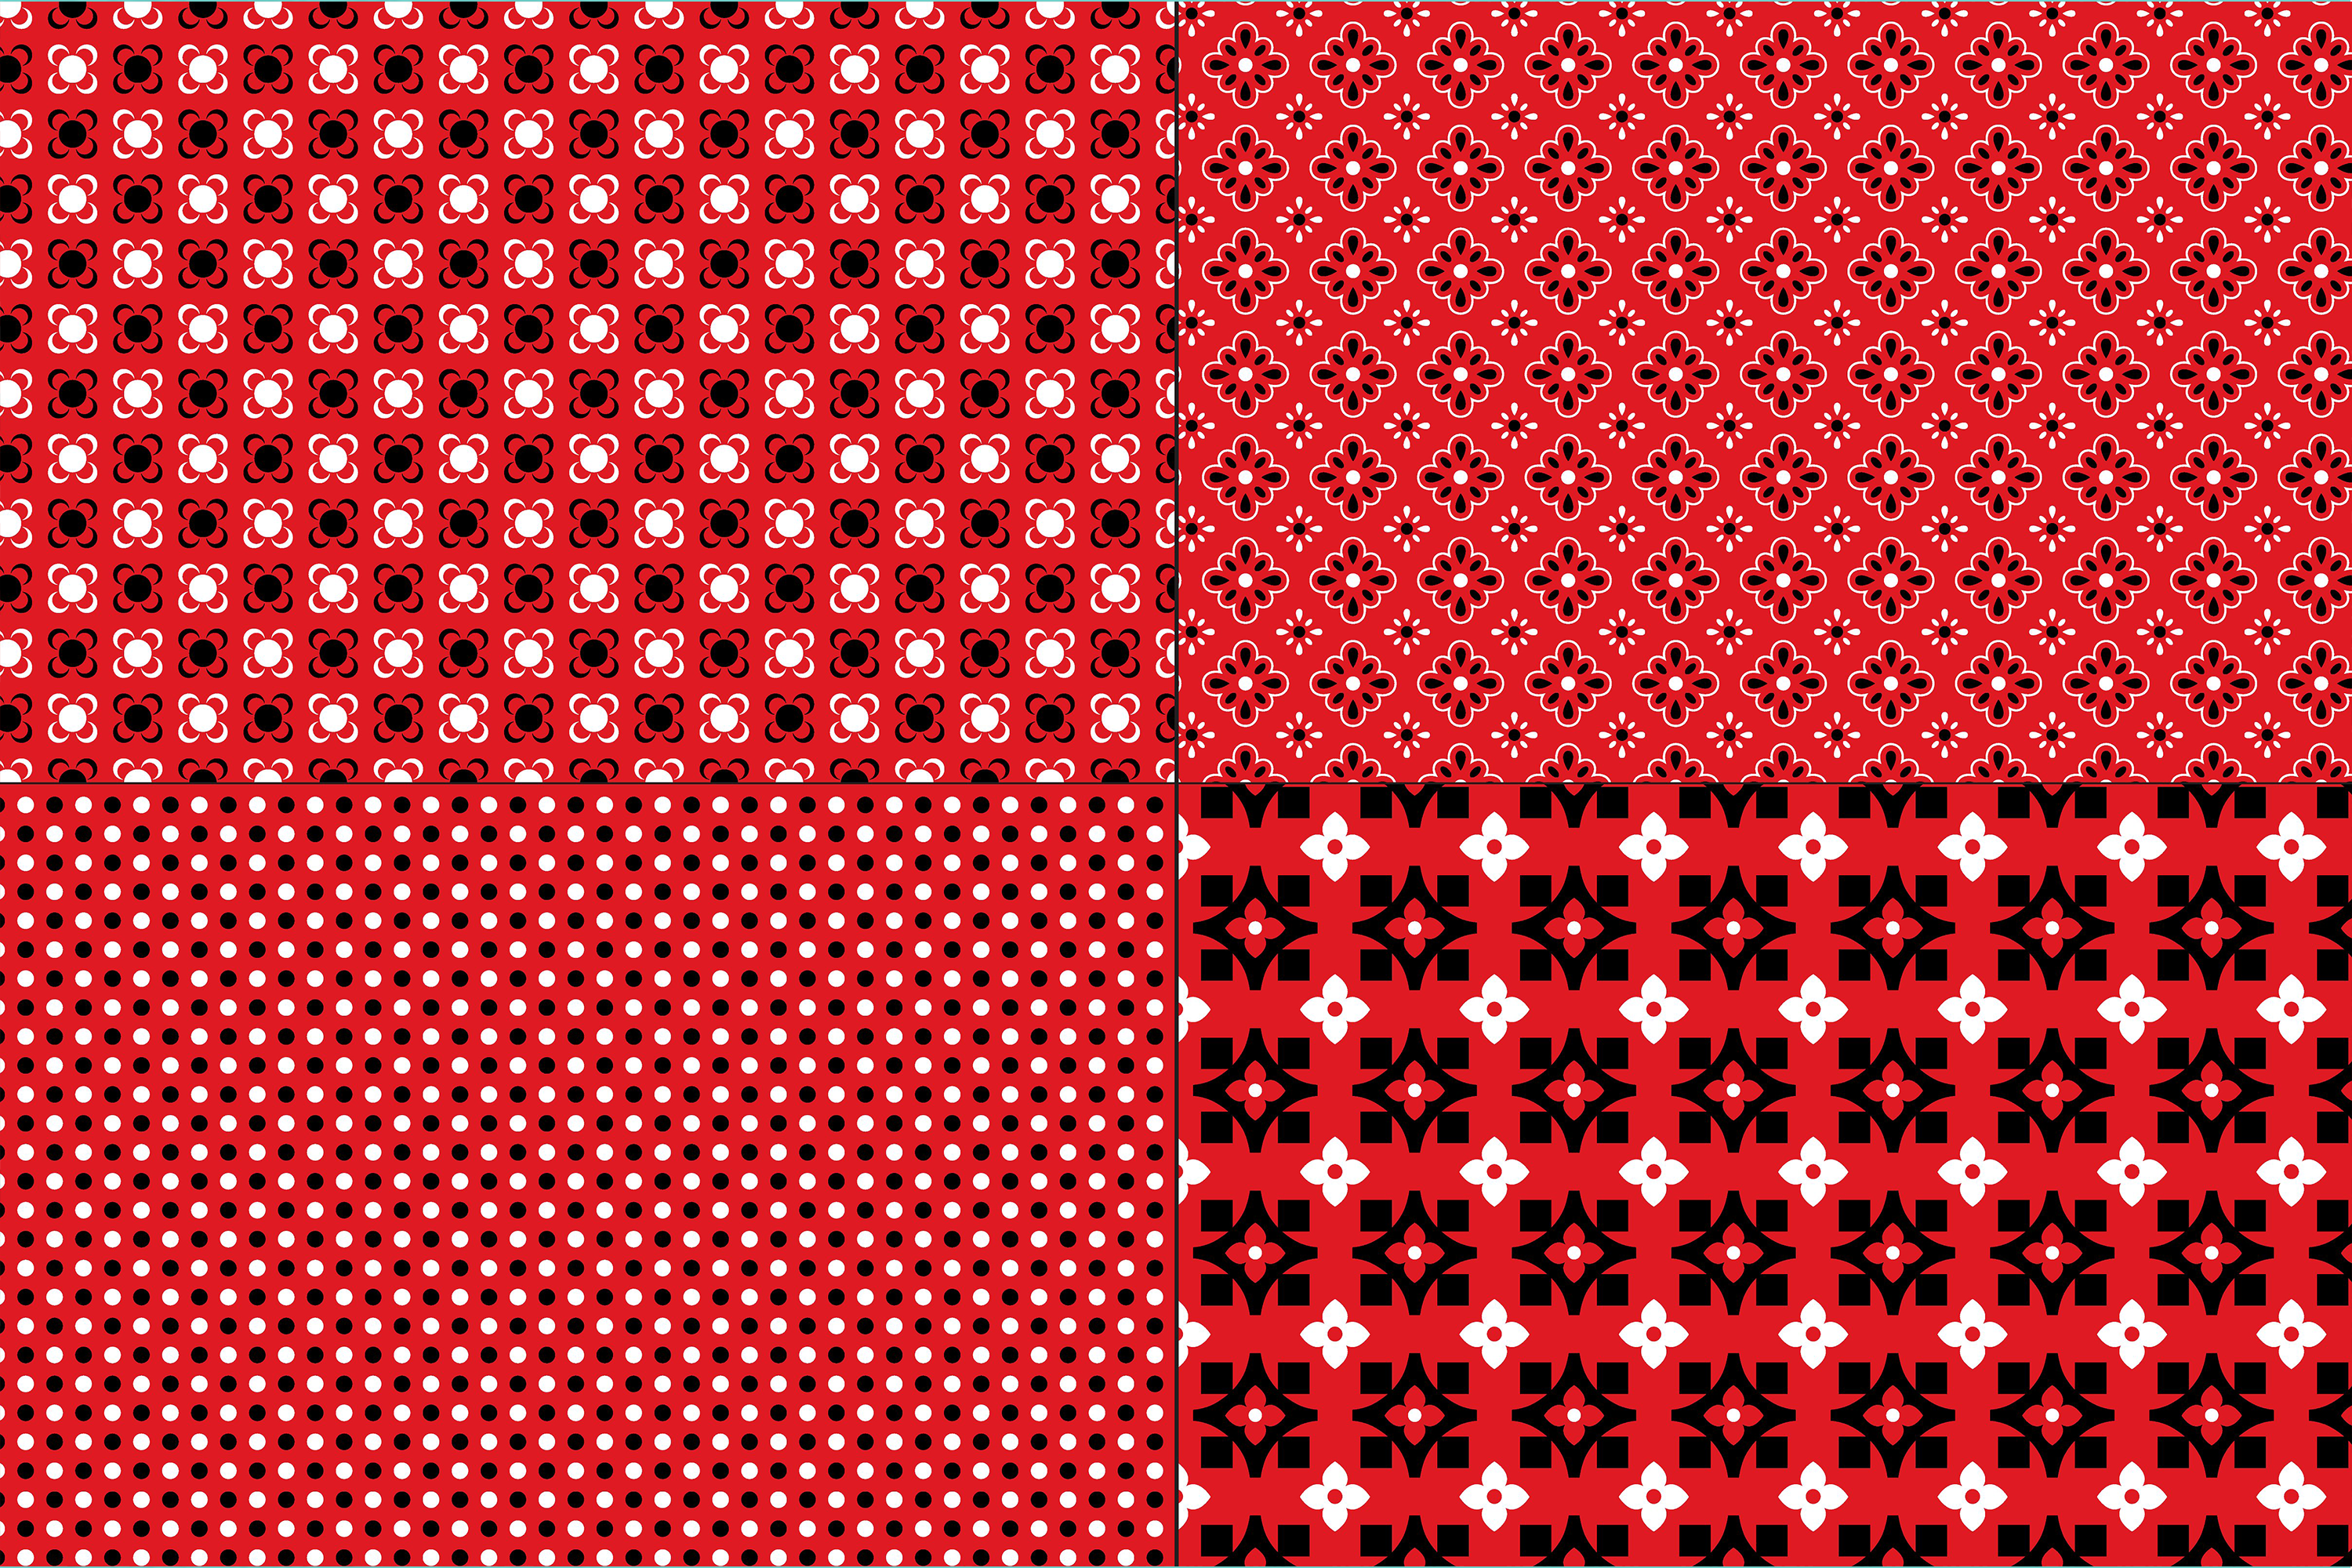 Red Bandana Patterns example image 3